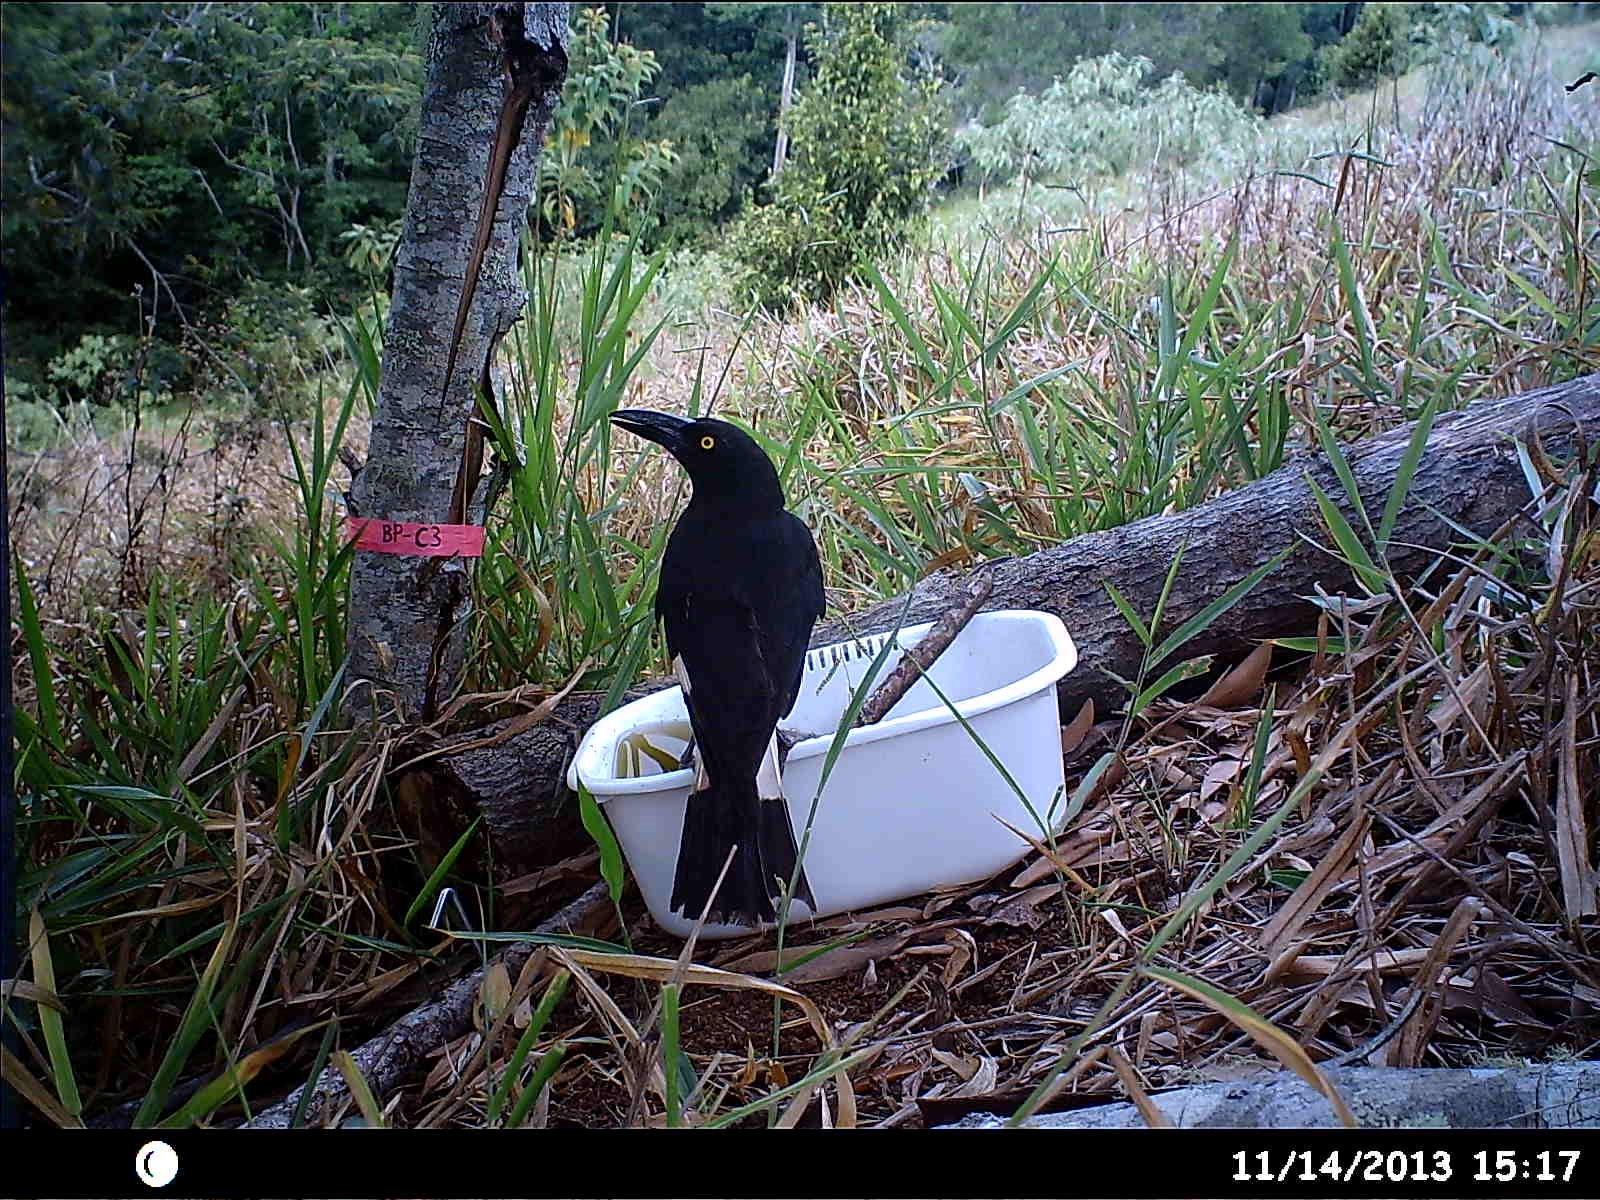 """Figure 1. A Pied Currawong at a water trough in a """"Kickstart"""" pasture conversion plot. [See Elgar, A.T., Freebody, K., Pohlman, C.P., Shoo, L.P. & Catterall, C.P. (2014) Overcoming barriers to seedling regeneration during forest restoration on tropical pasture land and the potential value of woody weeds. Frontiers in Plant Science 5: 200. http://dx.doi.org/10.3389/fpls.2014.00200]"""